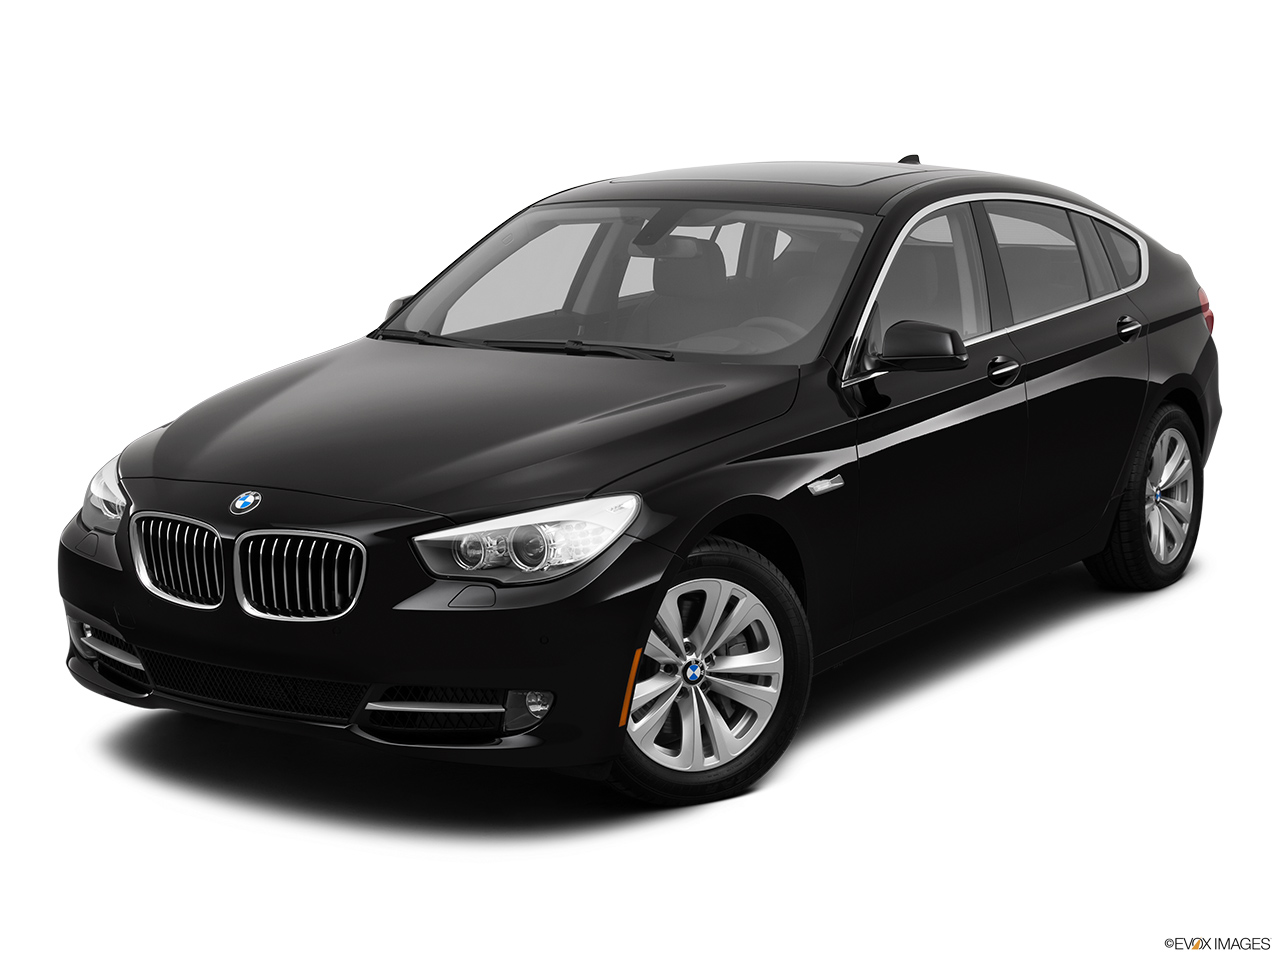 2013 bmw 3 series specs 4 door sedan rwd 328i autos weblog - 2013 bmw 335i coupe specs ...